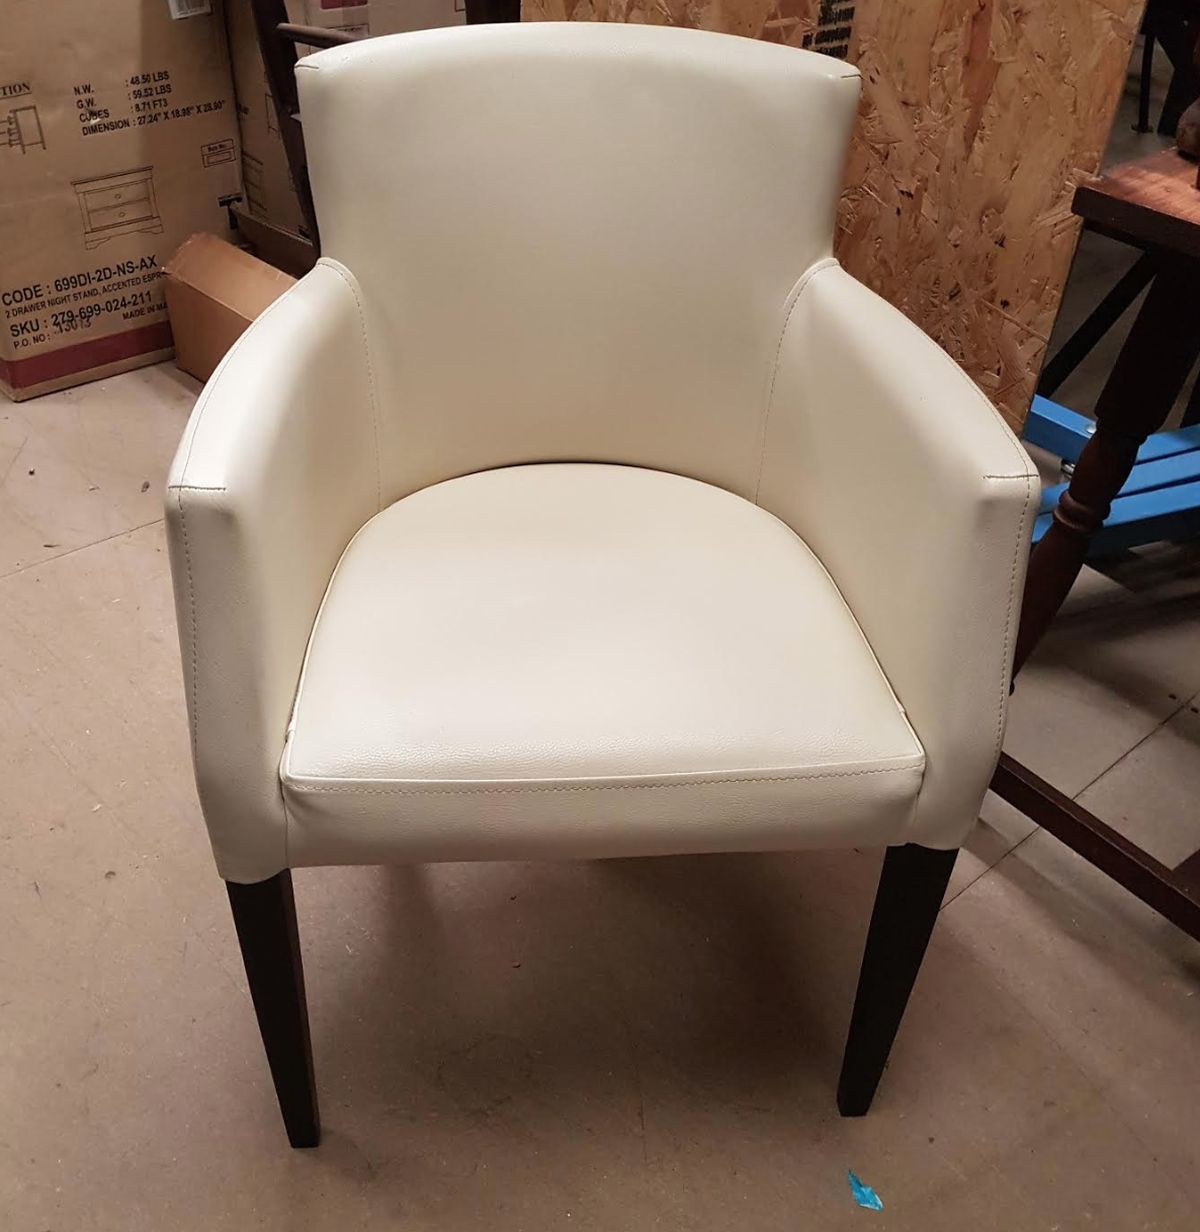 Secondhand Chairs And Tables Lounge Furniture 10x Cream Faux